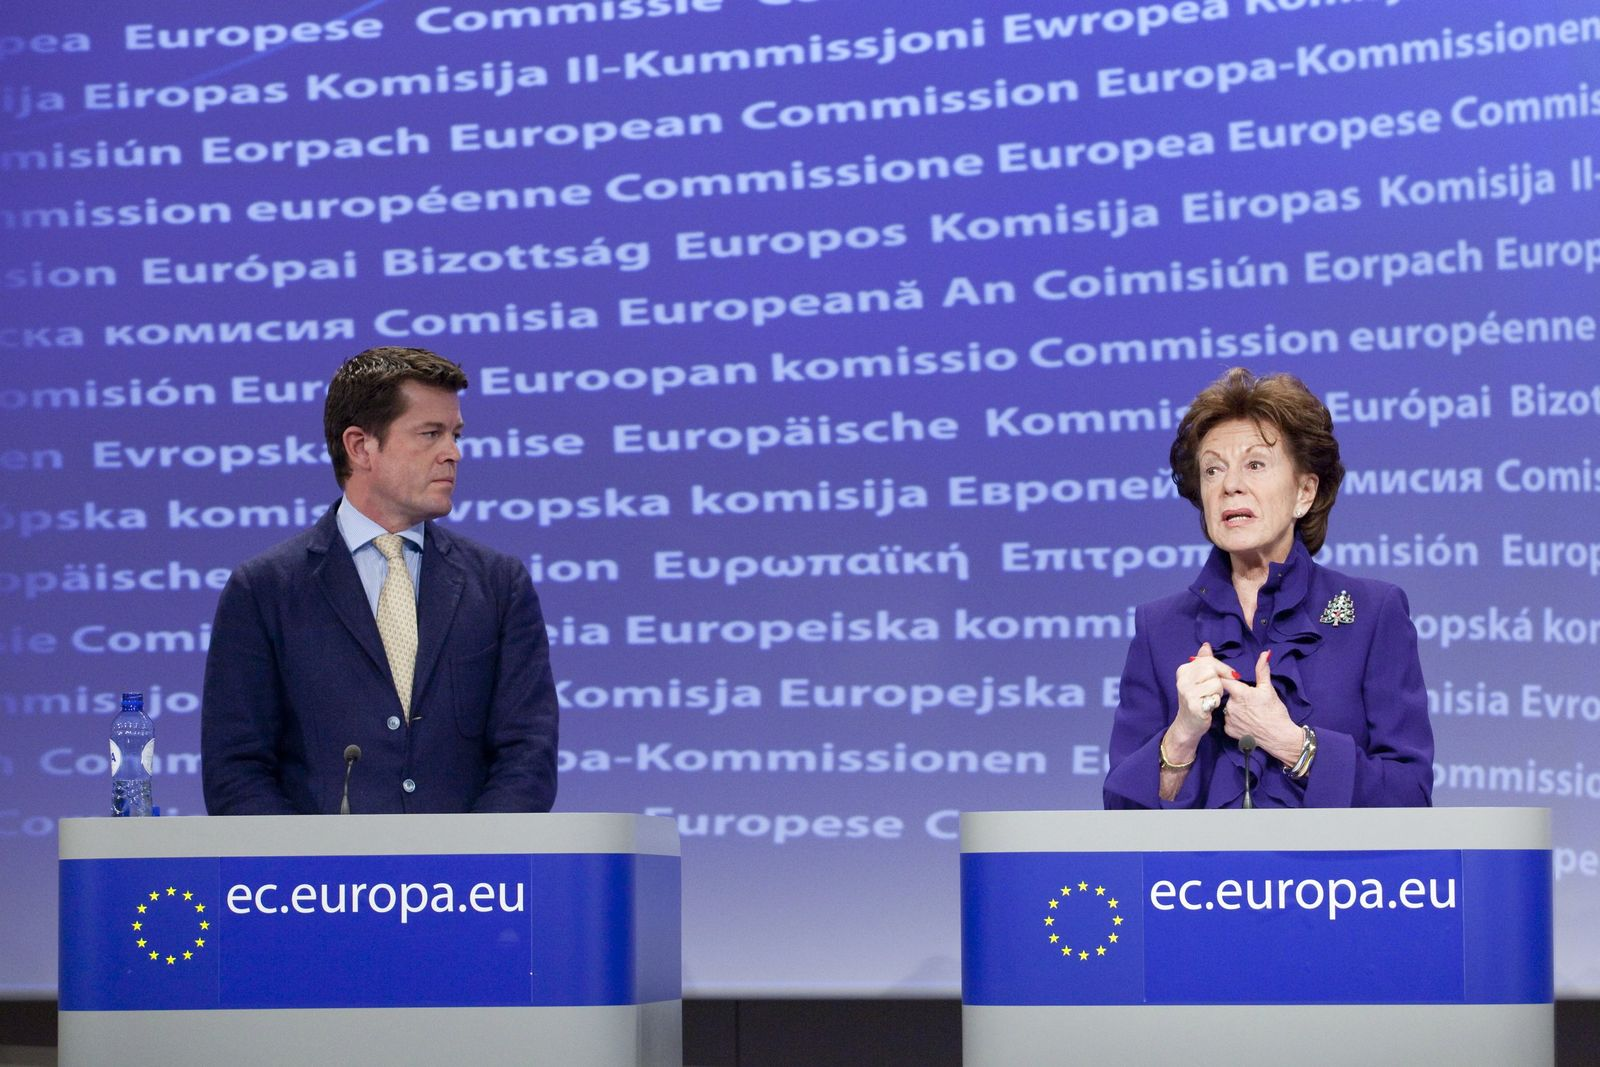 Press conference on the launch of Europes No Disconnect Strateg